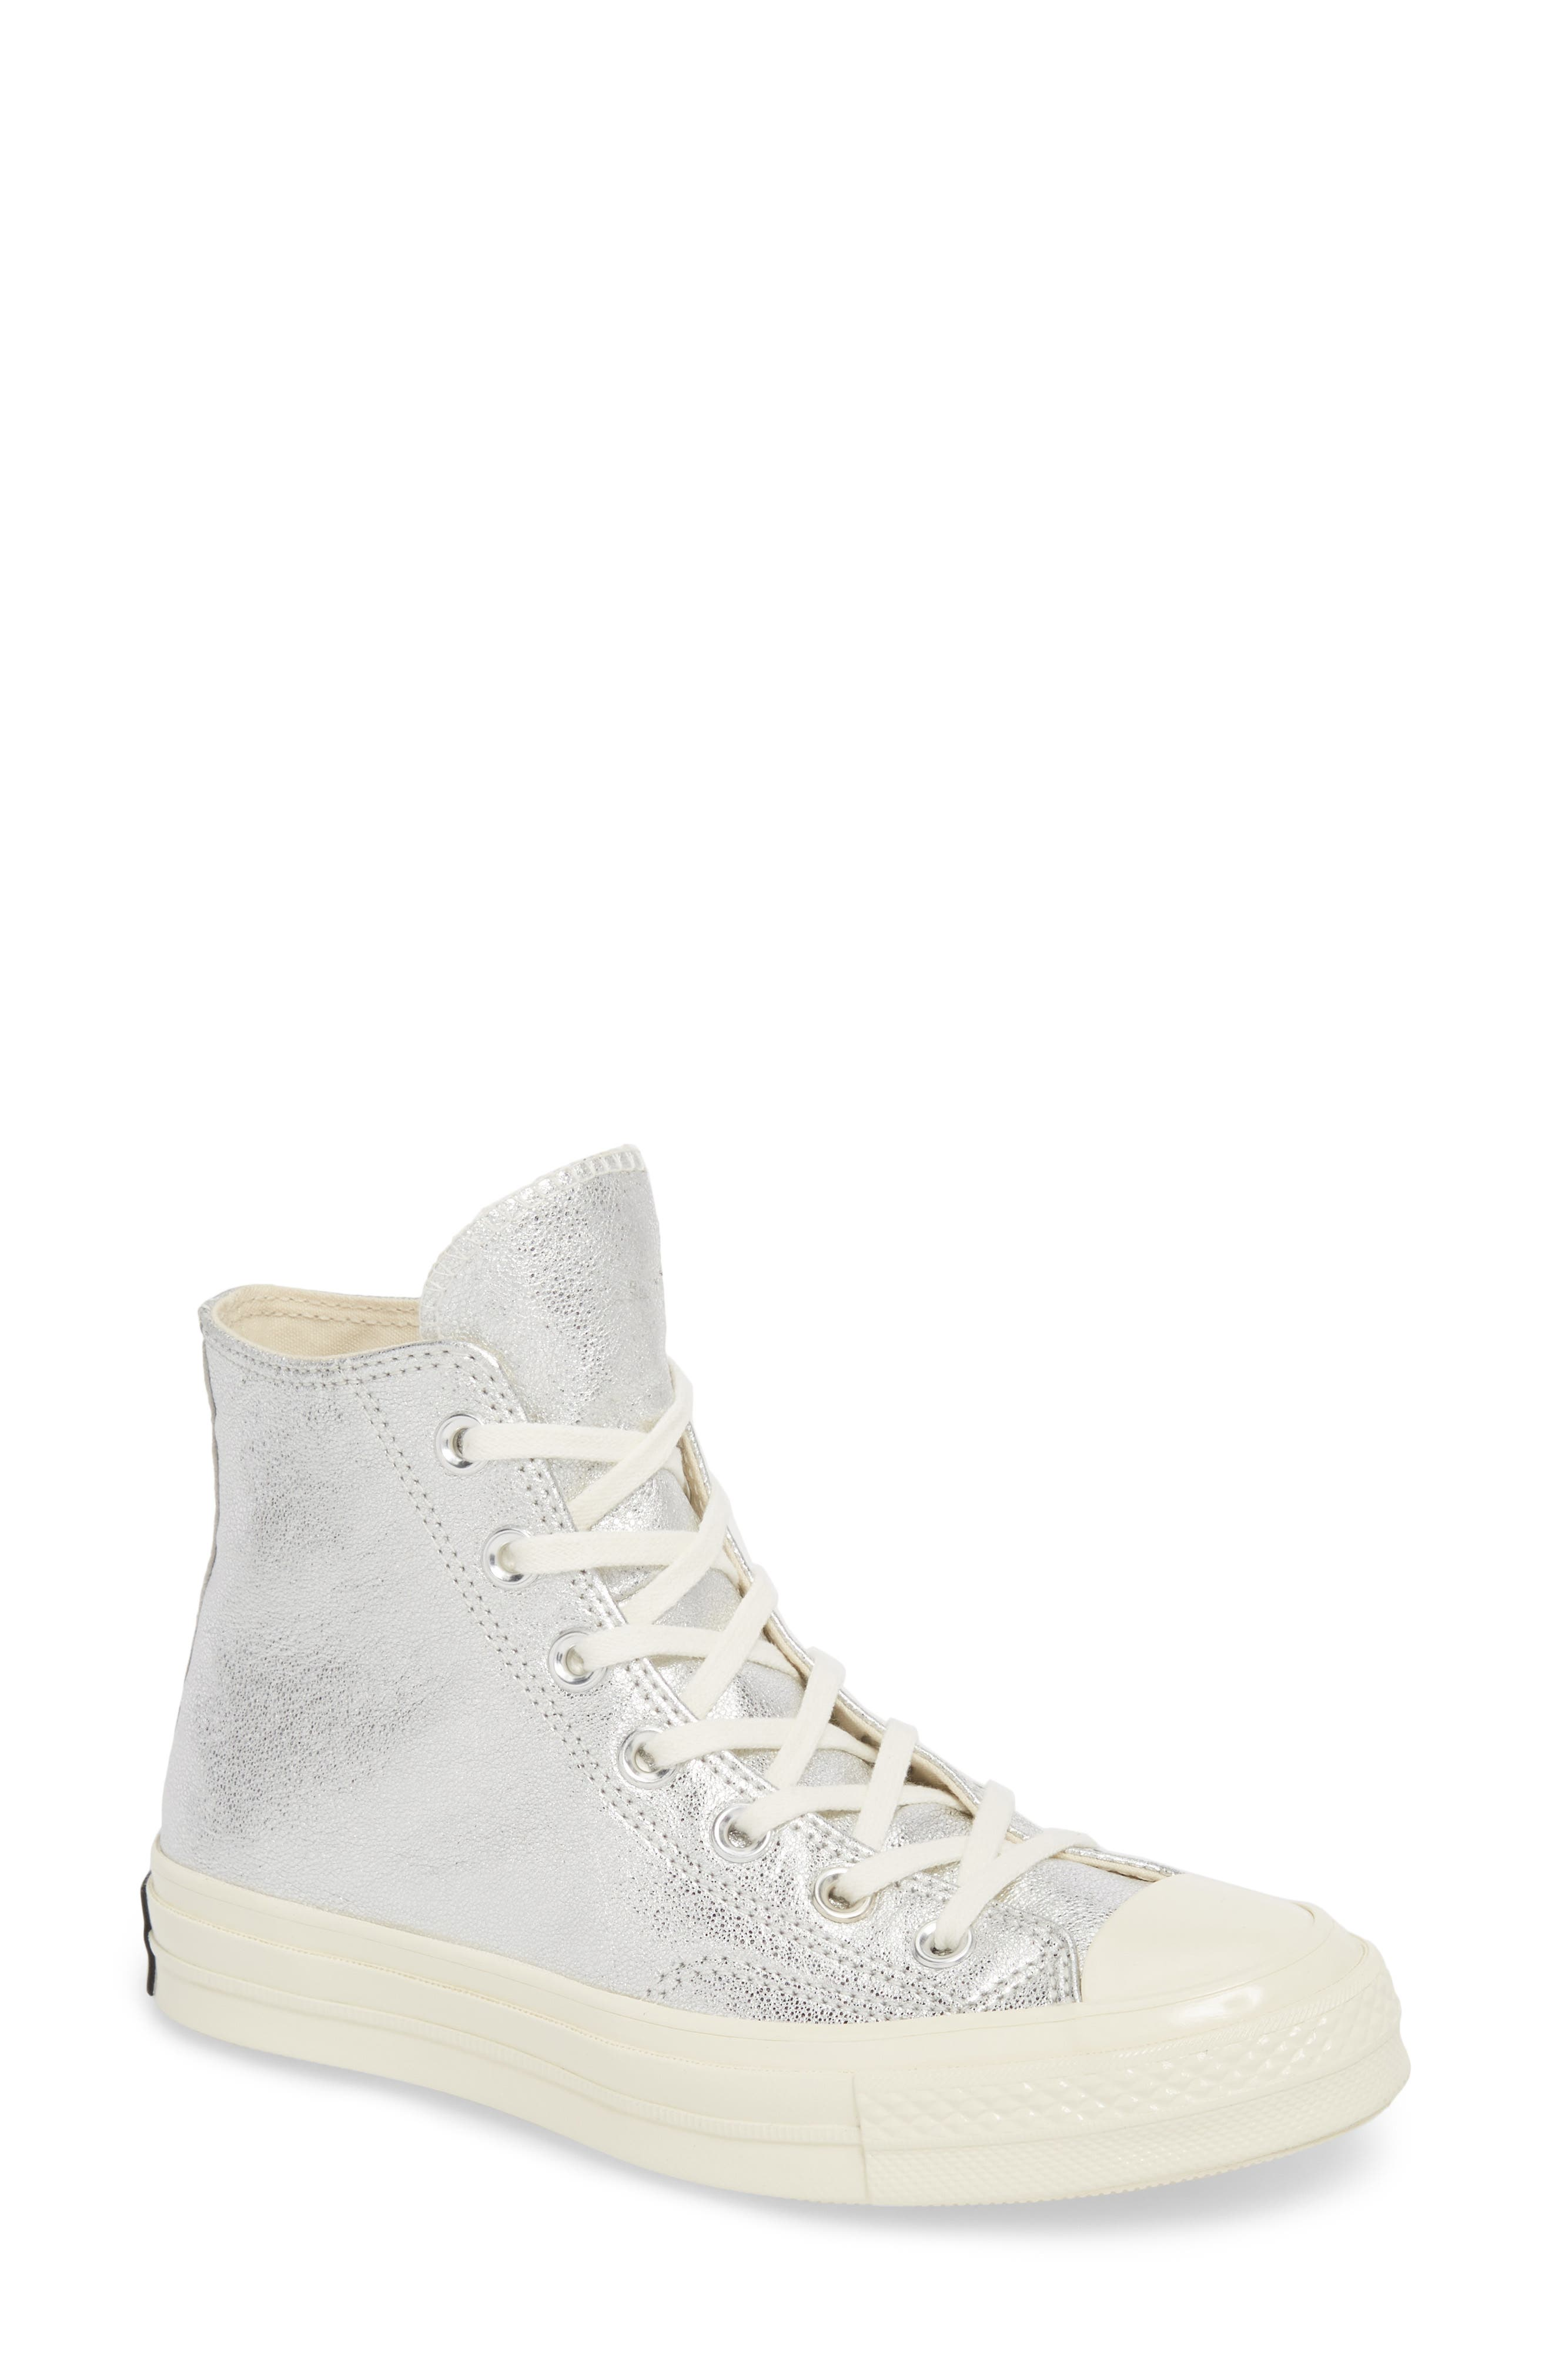 Chuck Taylor<sup>®</sup> All Star<sup>®</sup> Heavy Metal 70 High Top Sneaker,                             Main thumbnail 1, color,                             040